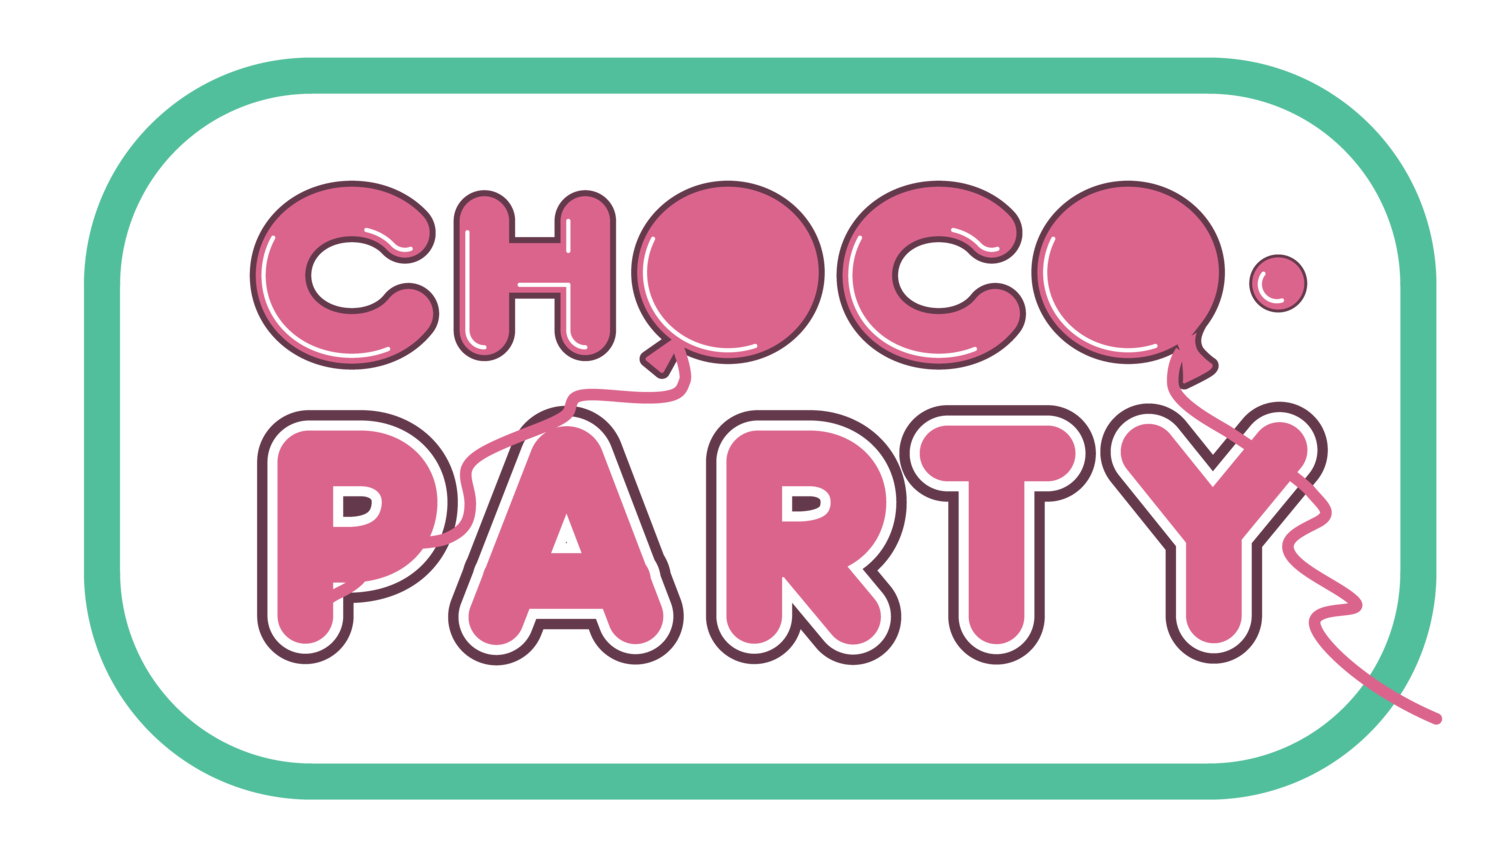 Choco Party